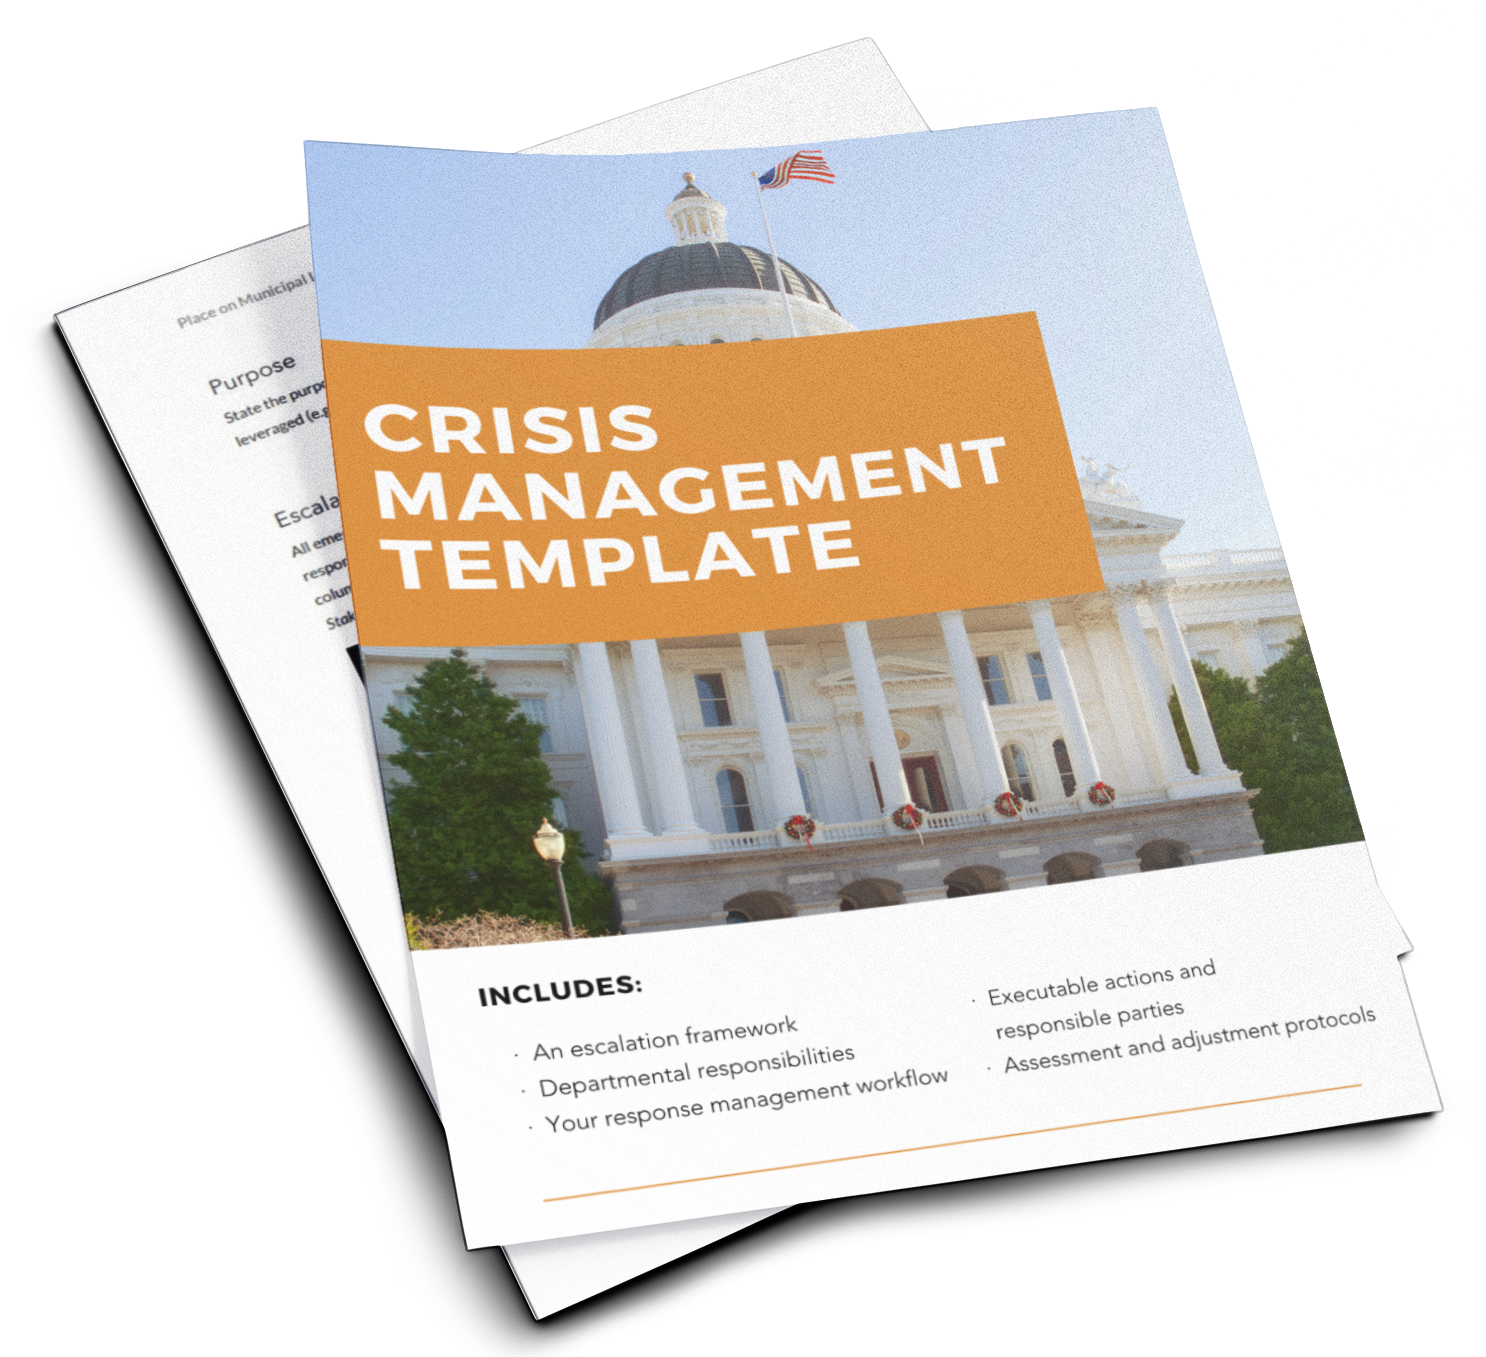 Crisis management template flyer image-1